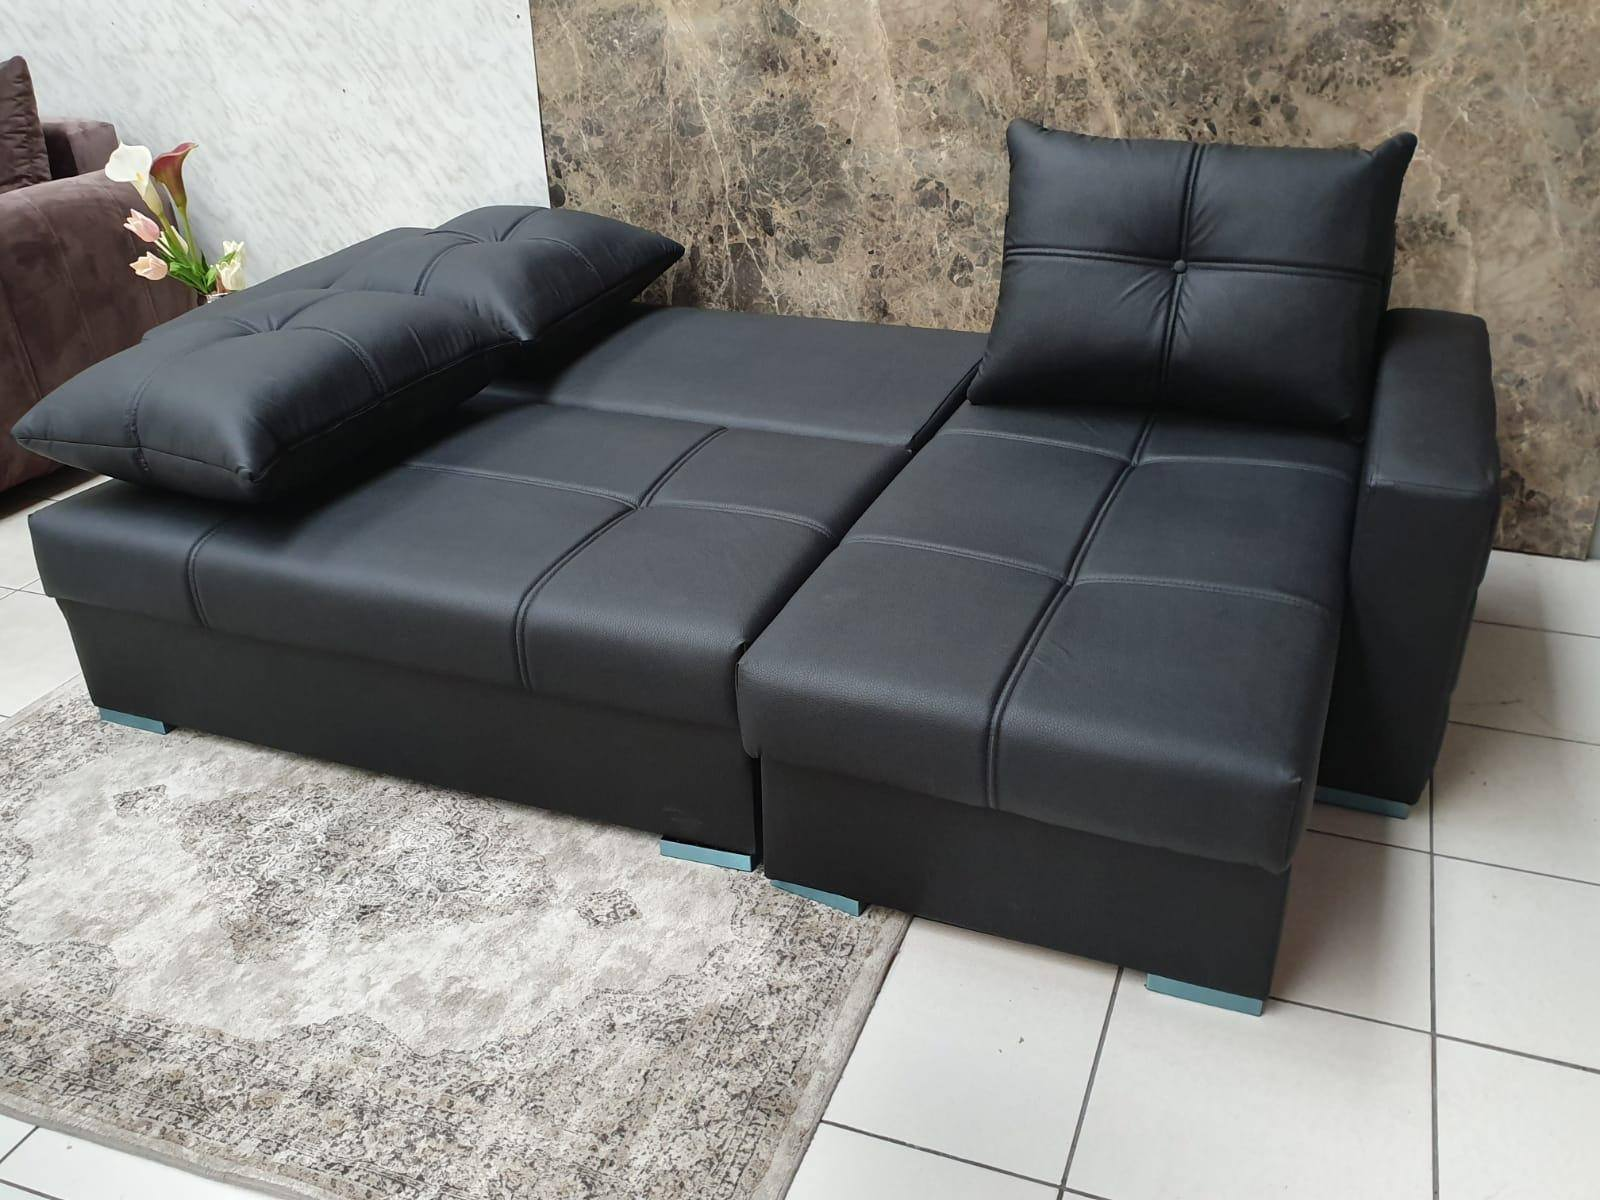 New Black Leather corner sofa bed – Furniture Valley Home